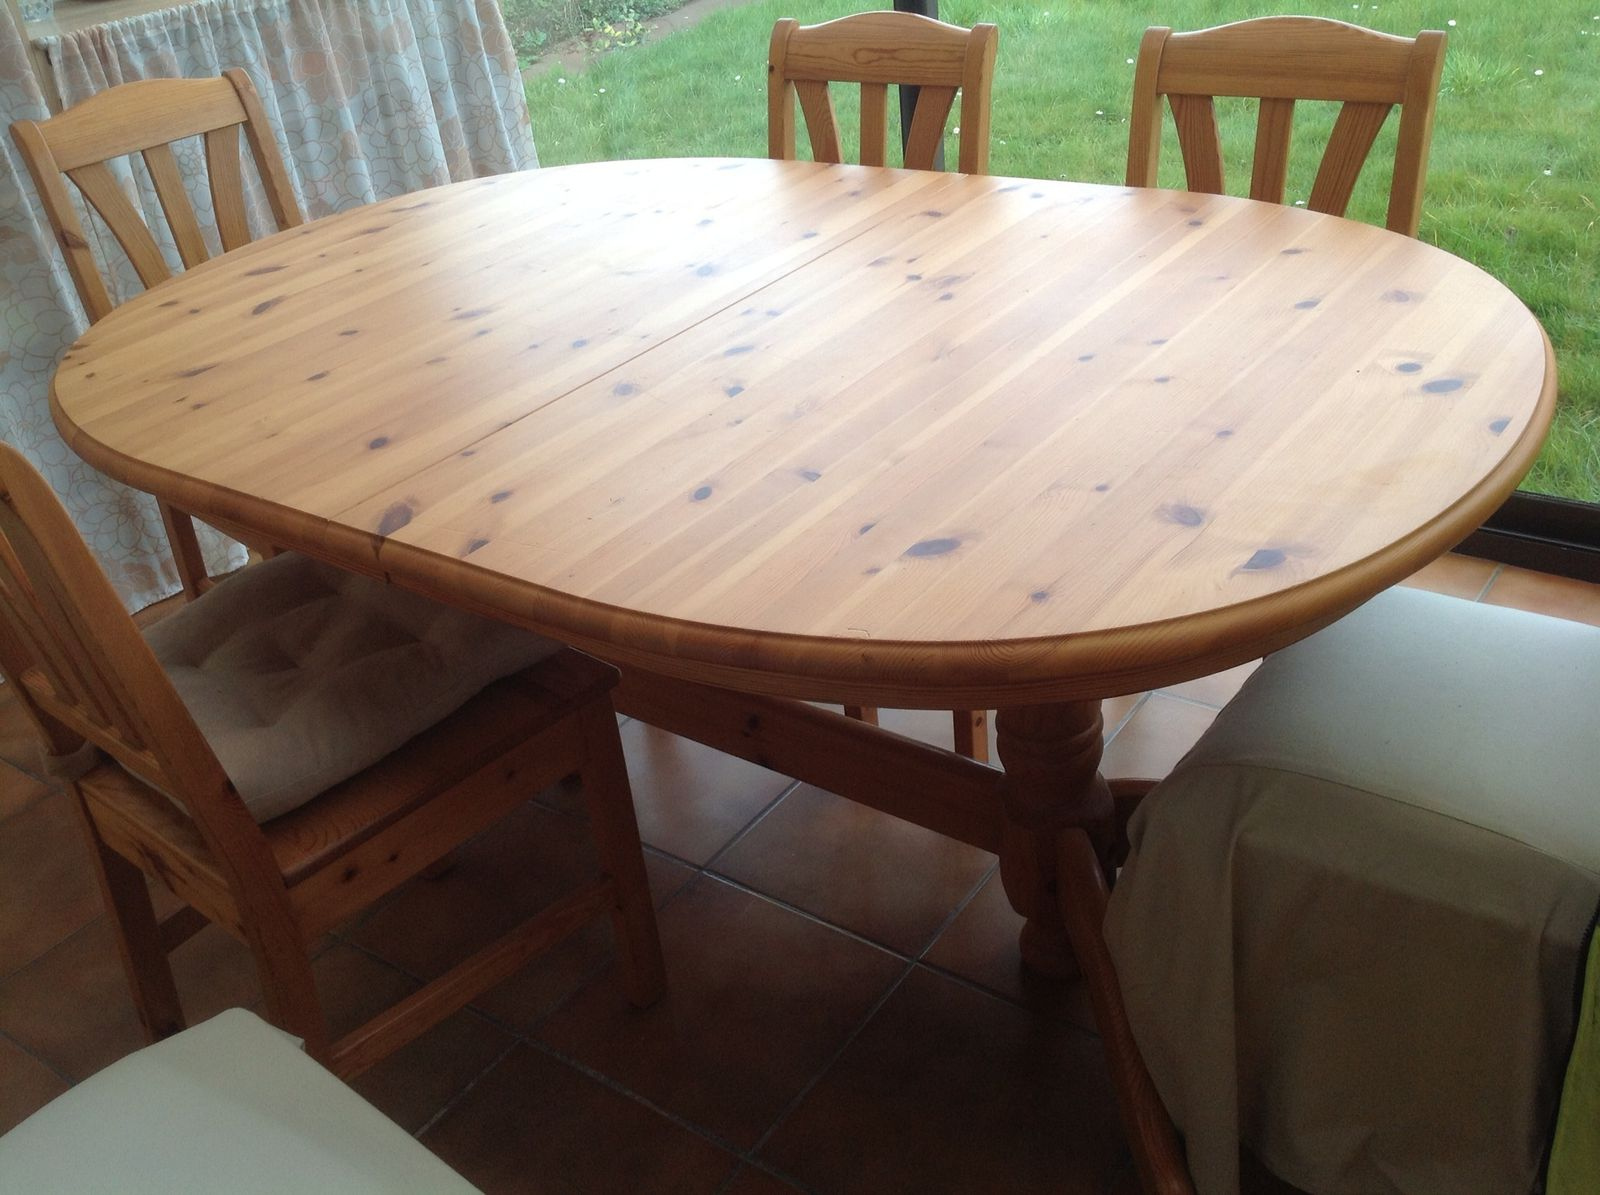 Album relooker une table ik a kakinou cr ation - Ikea table de cuisine ...